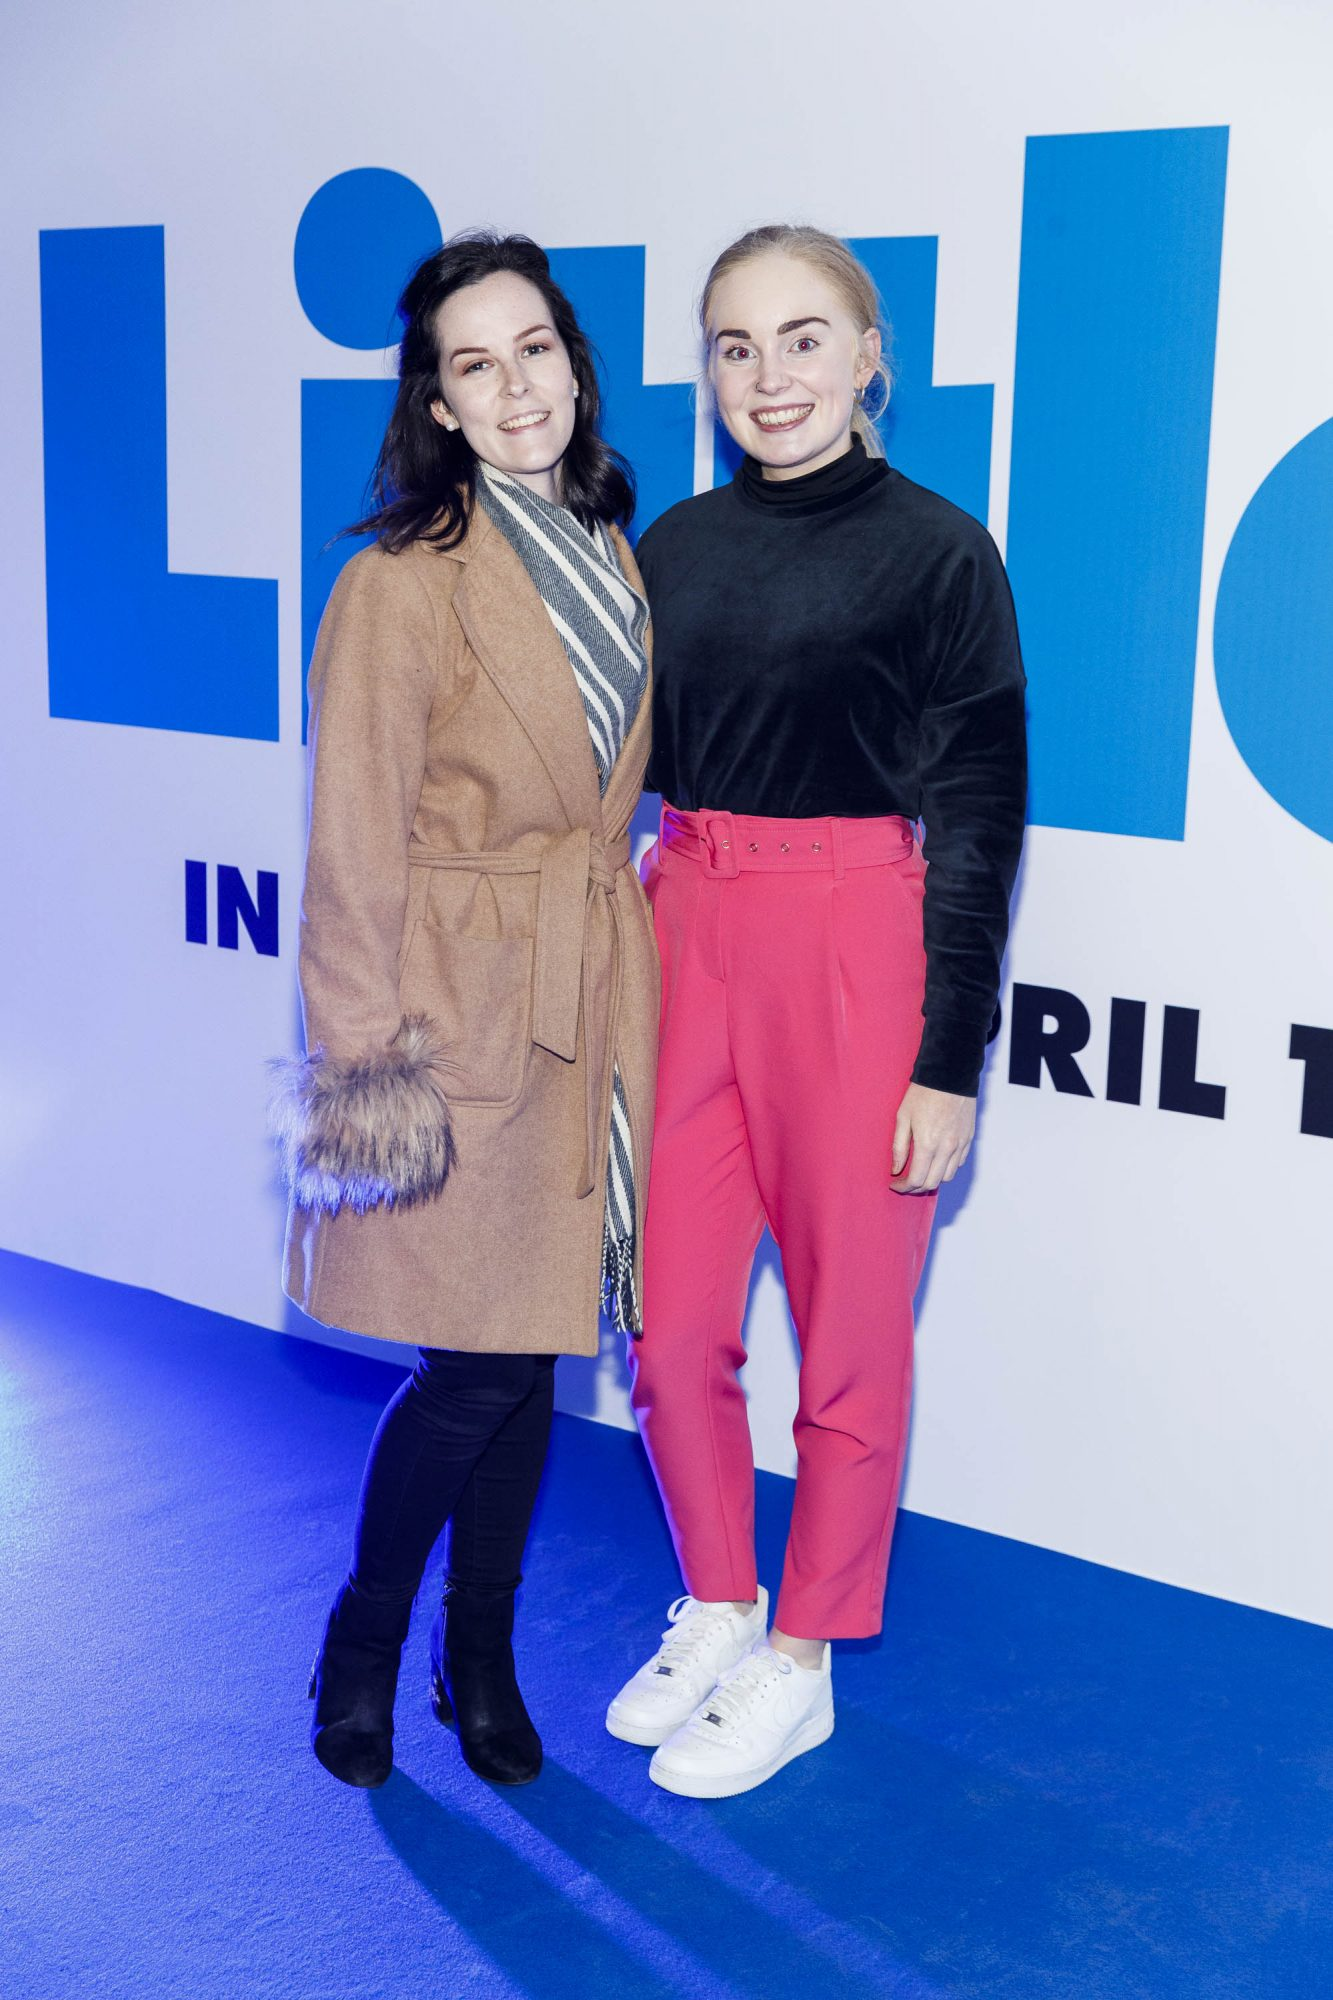 Bevin Maguire and Emily Flemming pictured at a special preview screening of Little at Odeon Point Square, Dublin. Little, starring Girls Trip Regina Hall hits cinemas across Ireland this Friday April 12th. Picture Andres Poveda